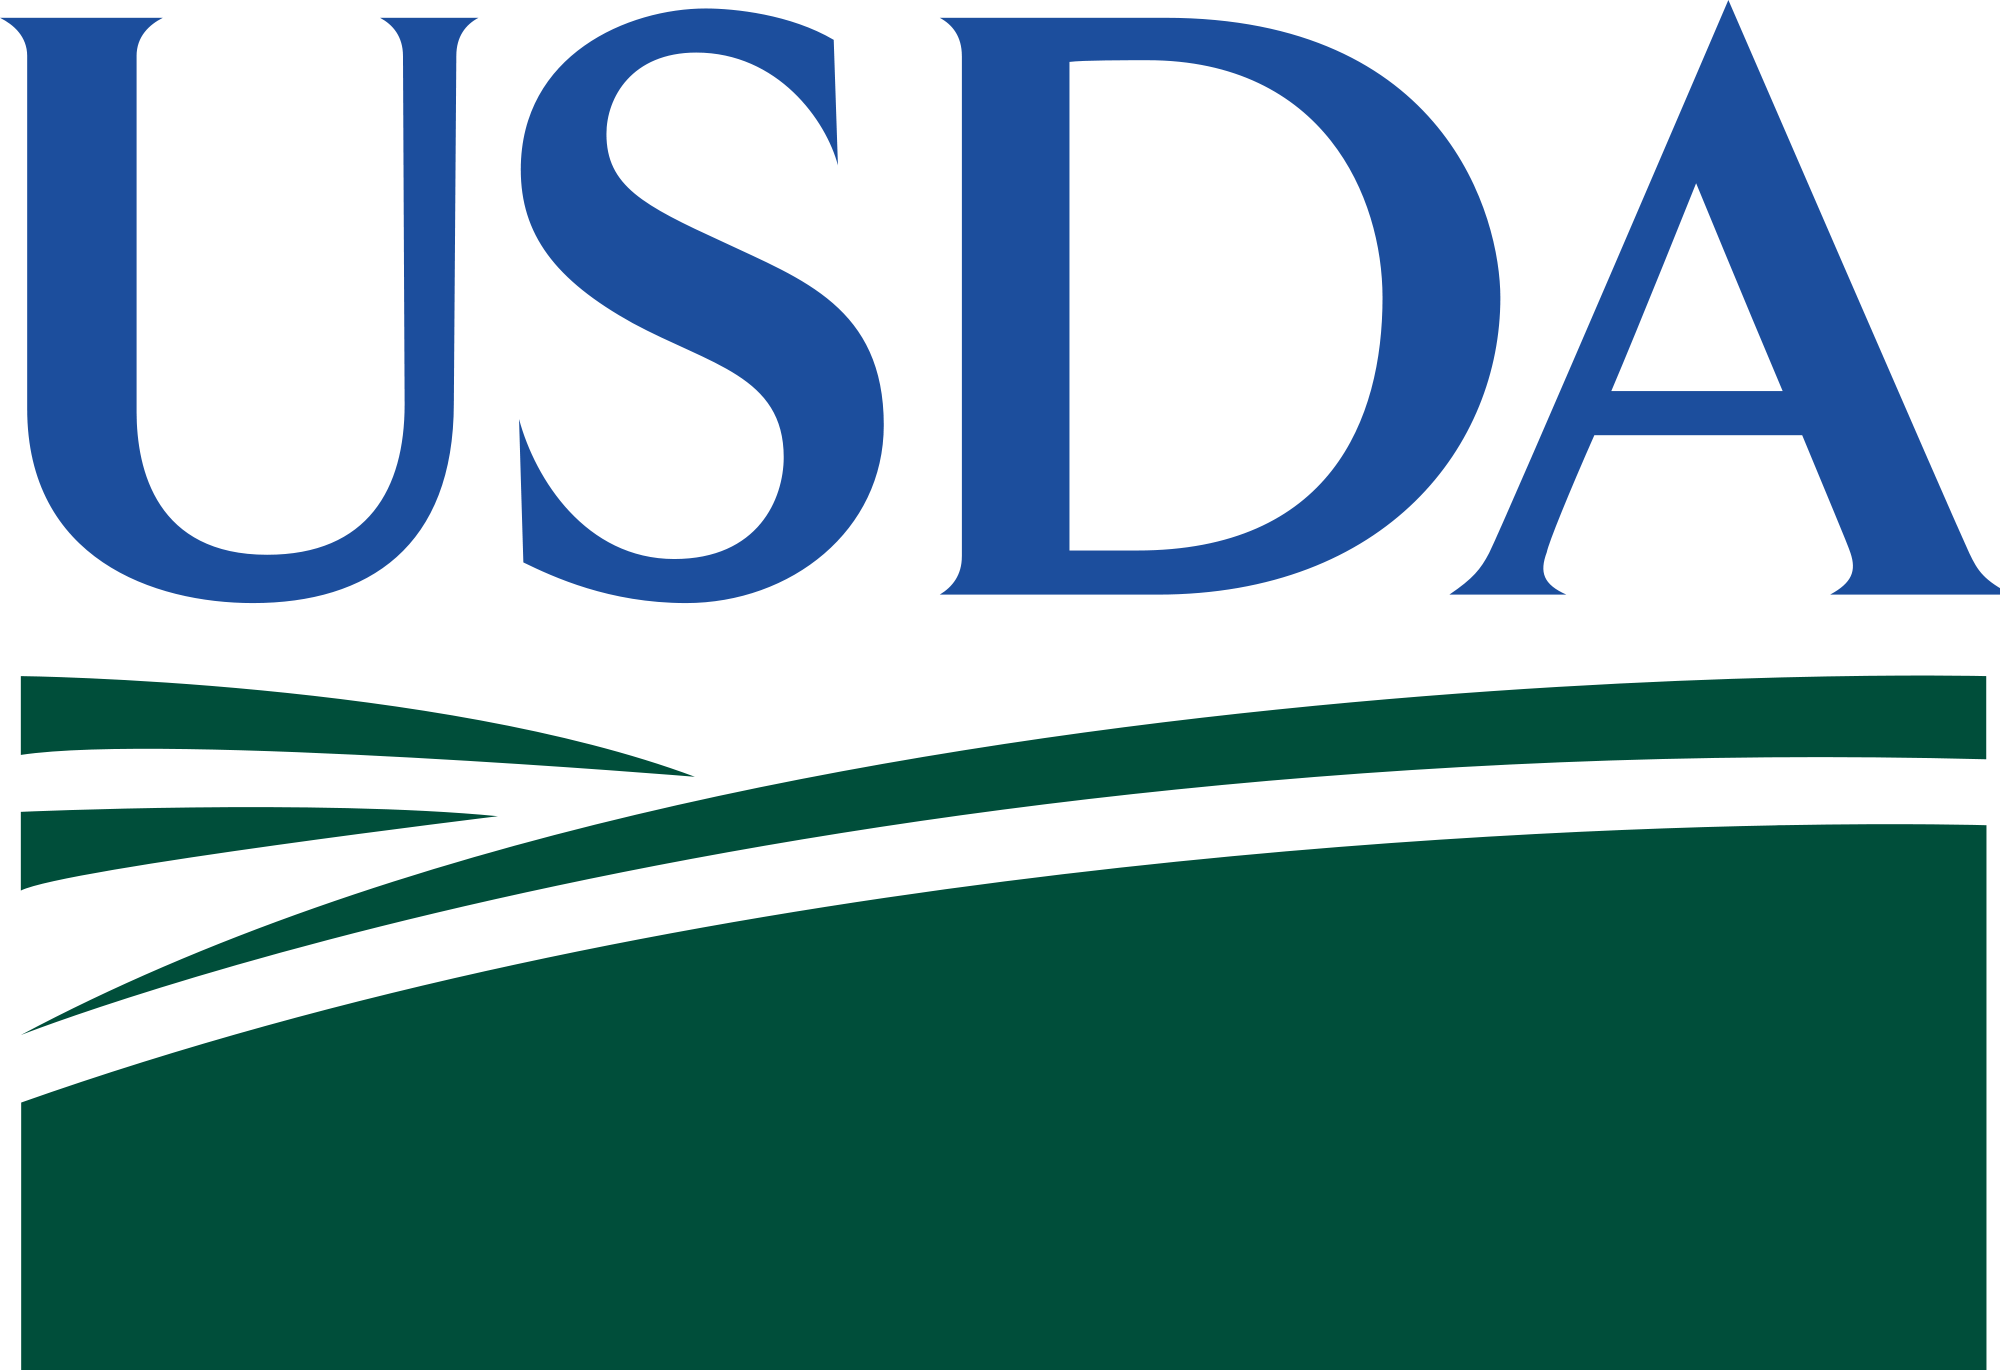 Concact USDA about GMO foods